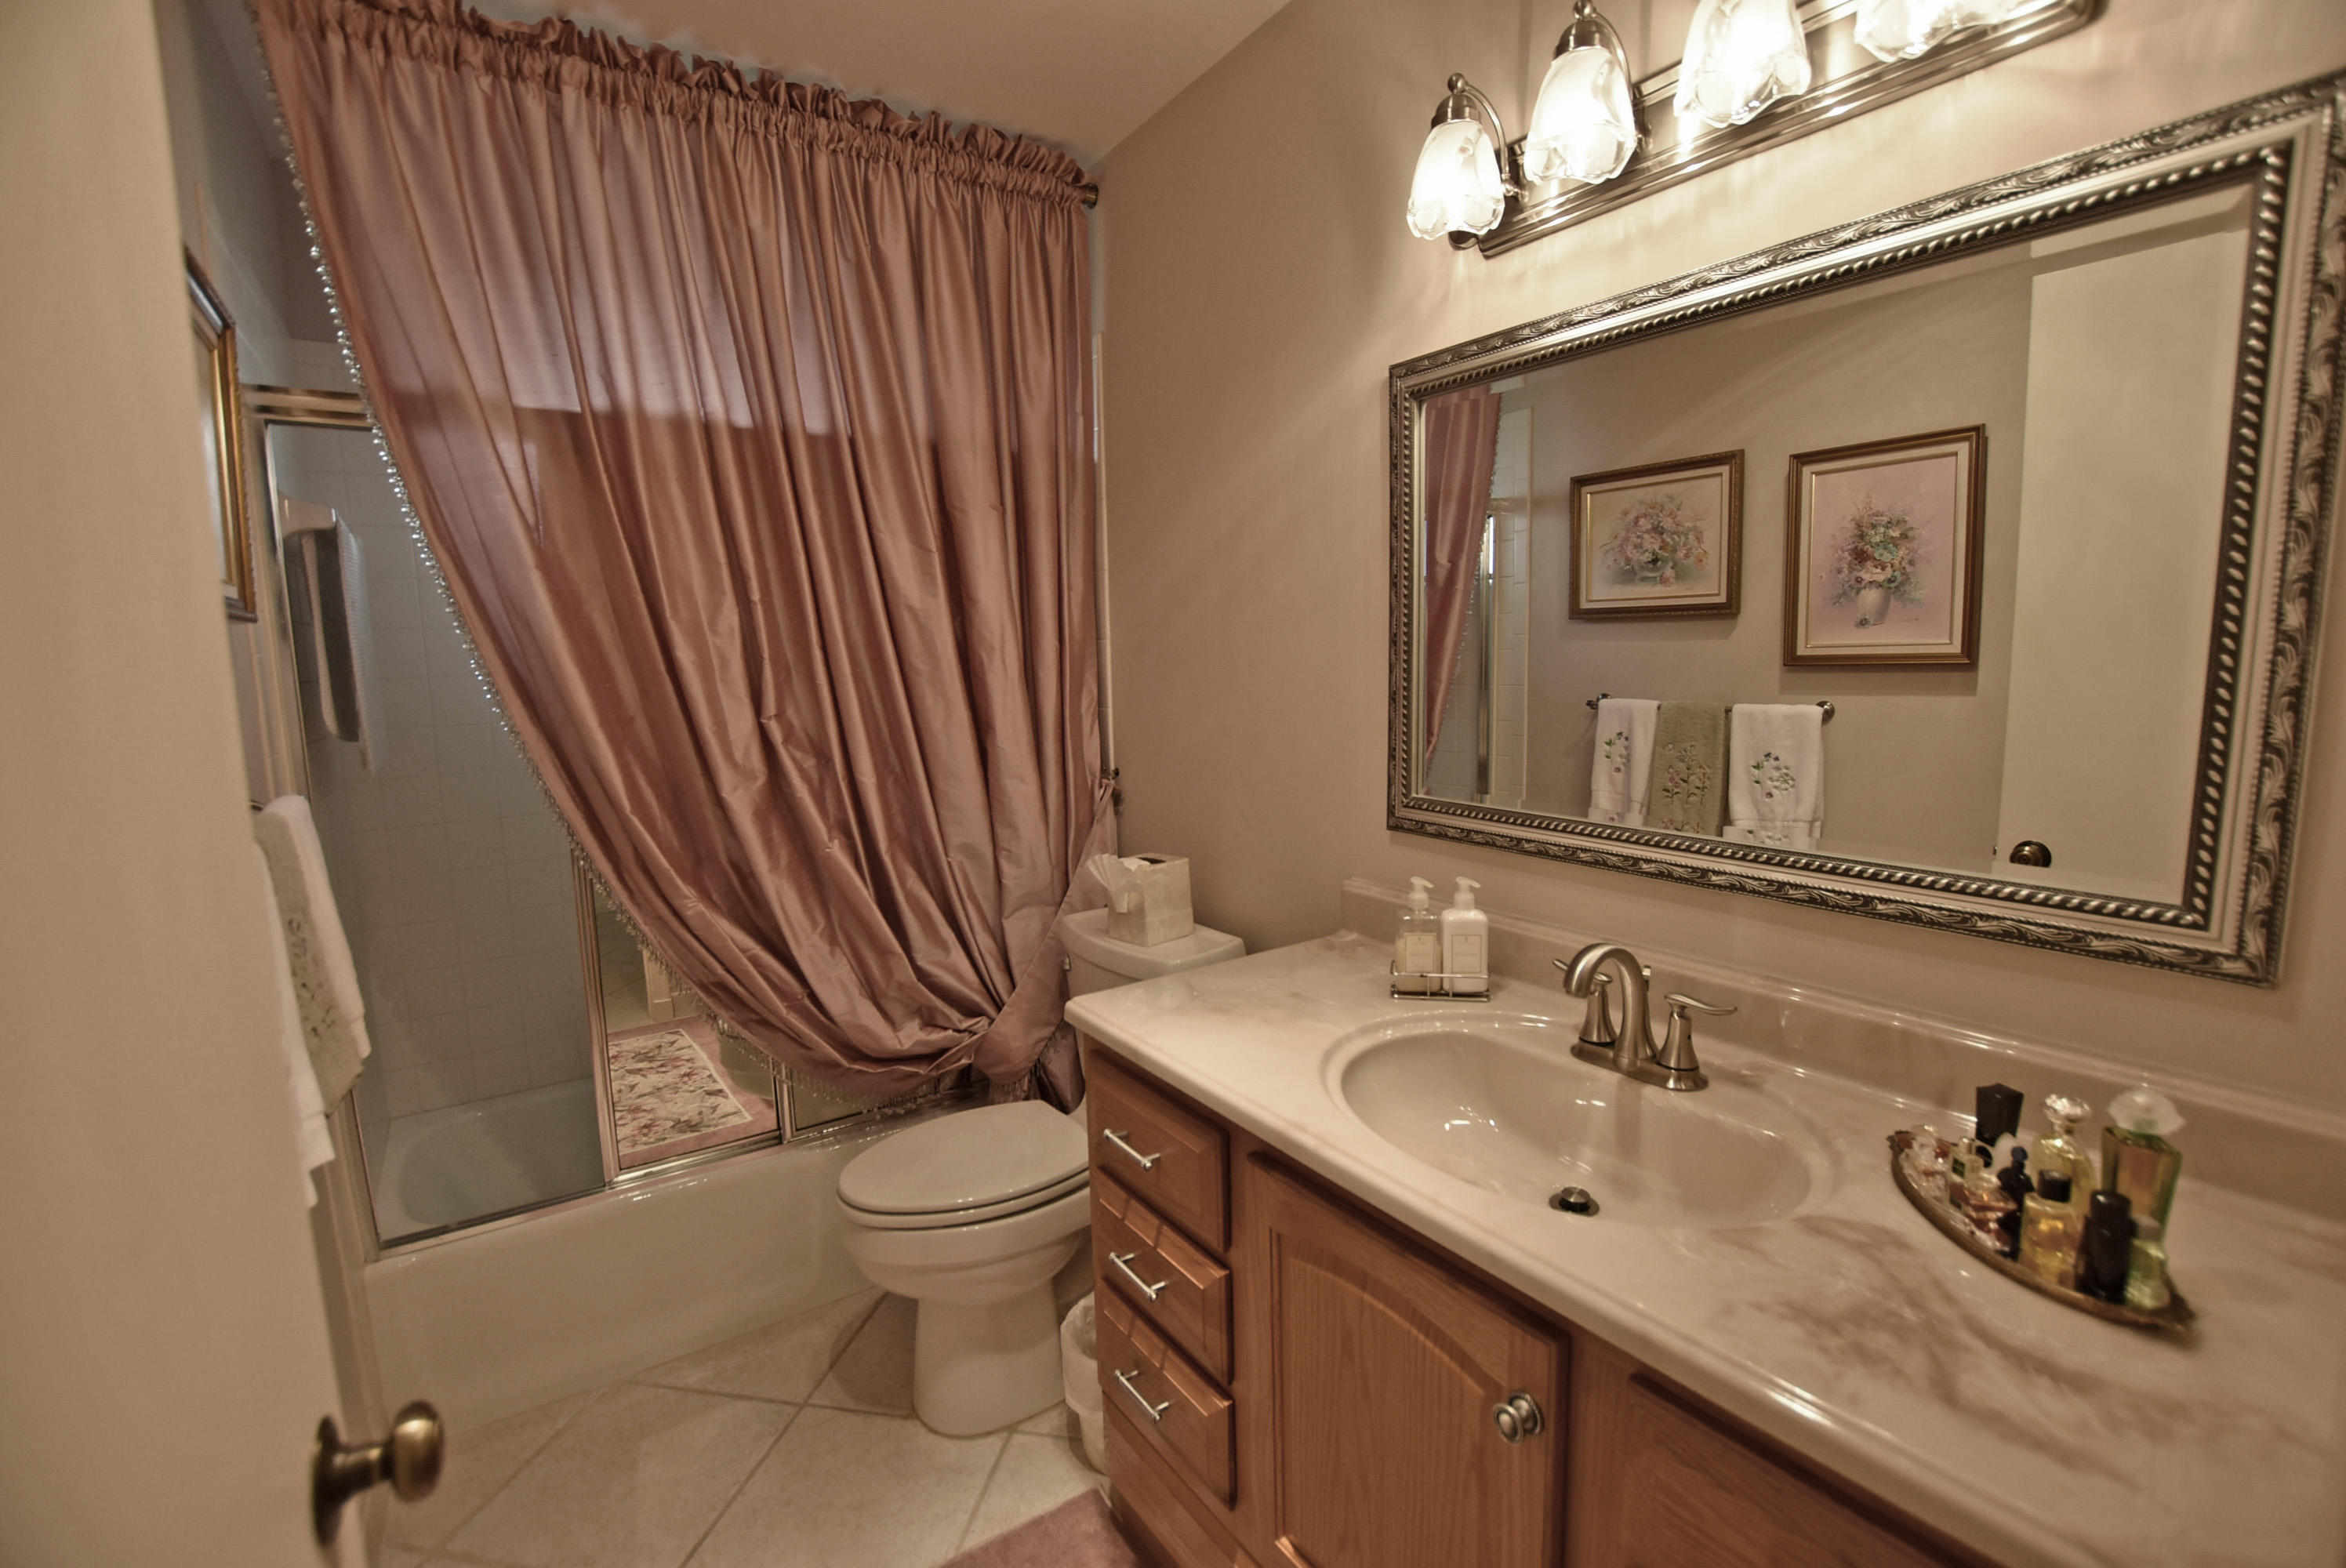 3566 Royal Tern Circle, Boynton Beach, Florida 33436, 3 Bedrooms Bedrooms, ,2 BathroomsBathrooms,Single Family,For Sale,Royal Tern,Royal Tern,RX-10407216